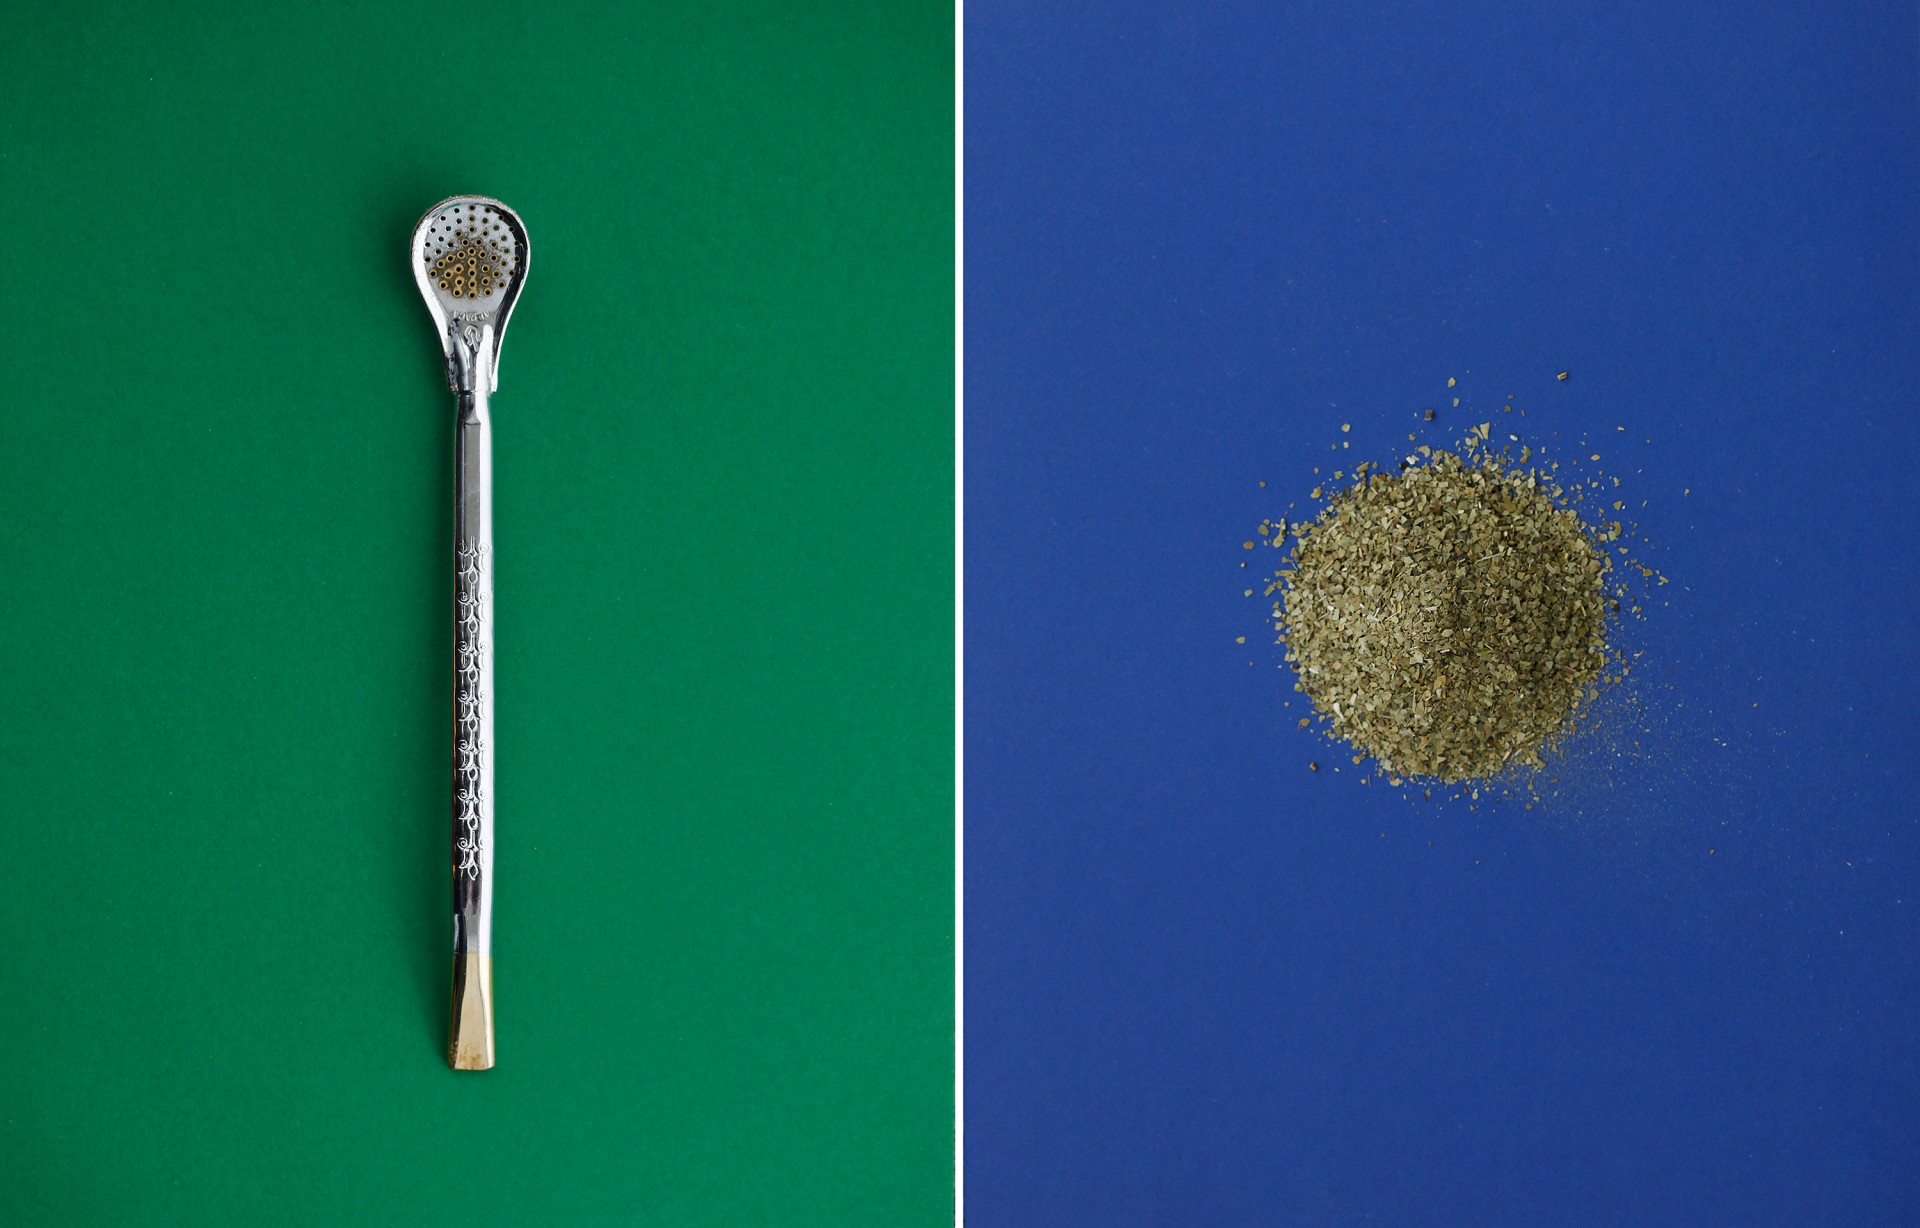 (Left) A bombilla, the metal drinking straw with a strainer at one end that's used to sip yerba mate. (Right) Mate leaves. Photos: Ryan Kellman/Meredith Rizzo/NPR